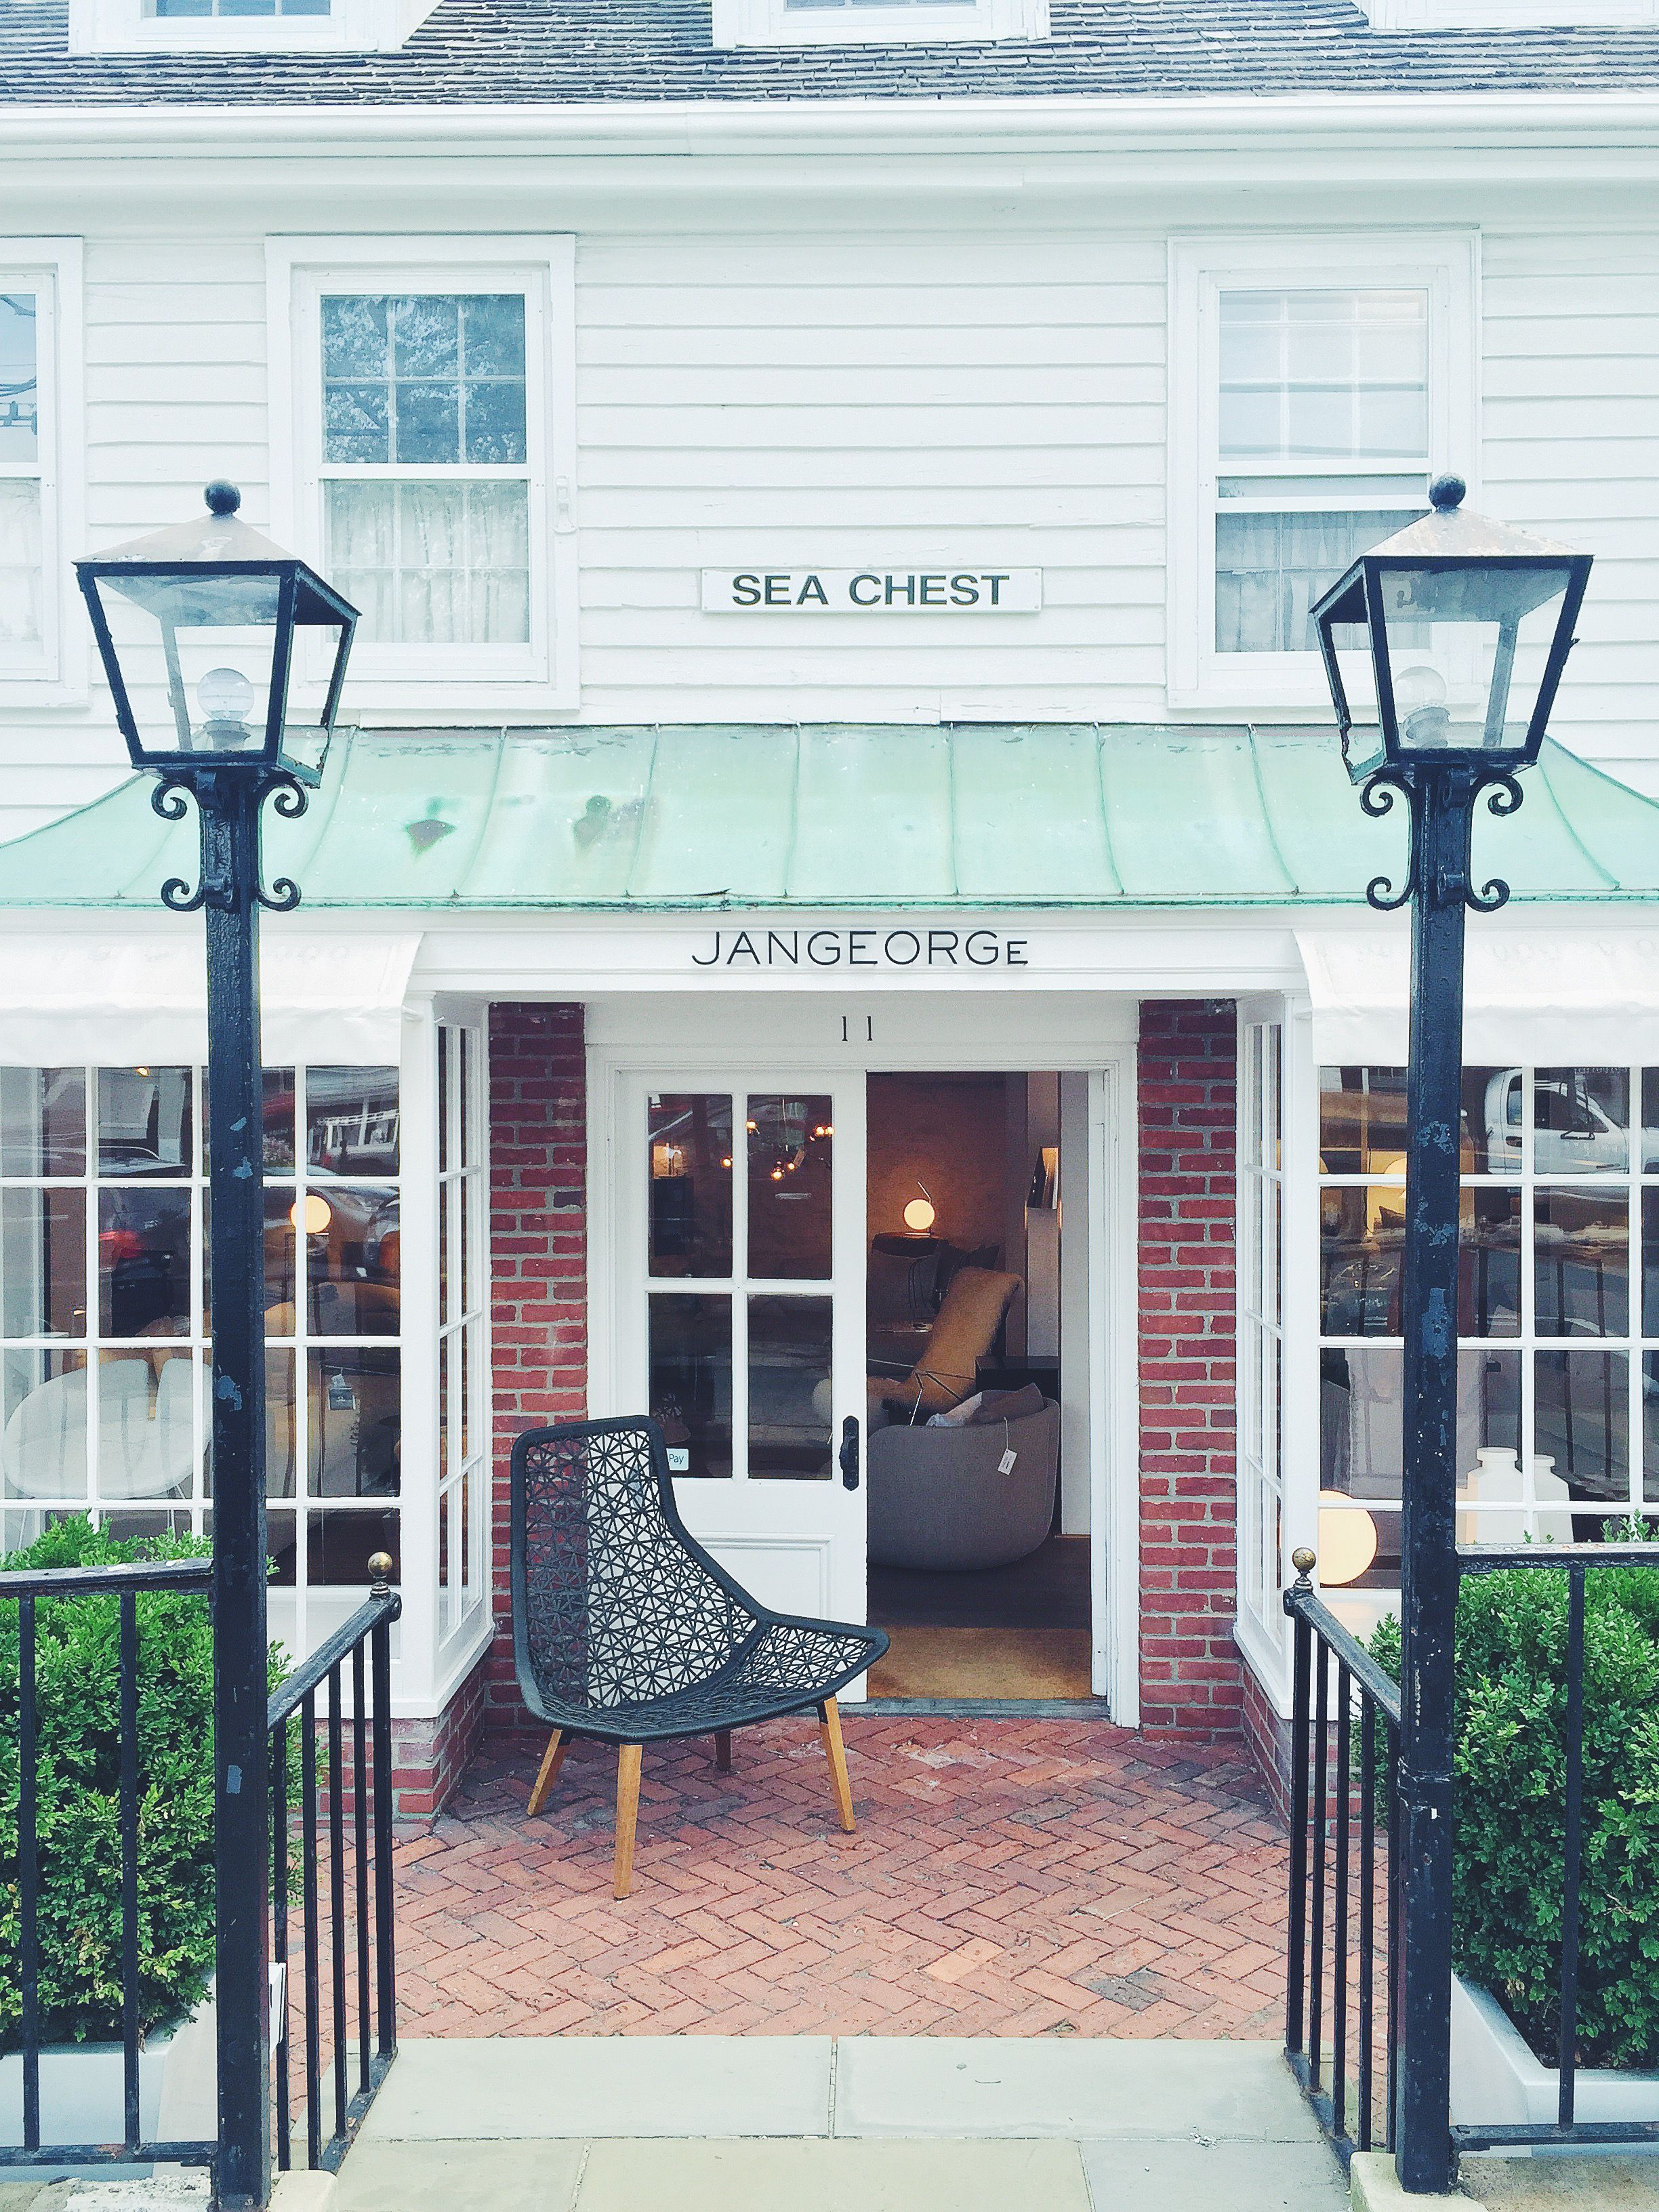 Jangeorge Furniture Store In Sag Harbor, Ny